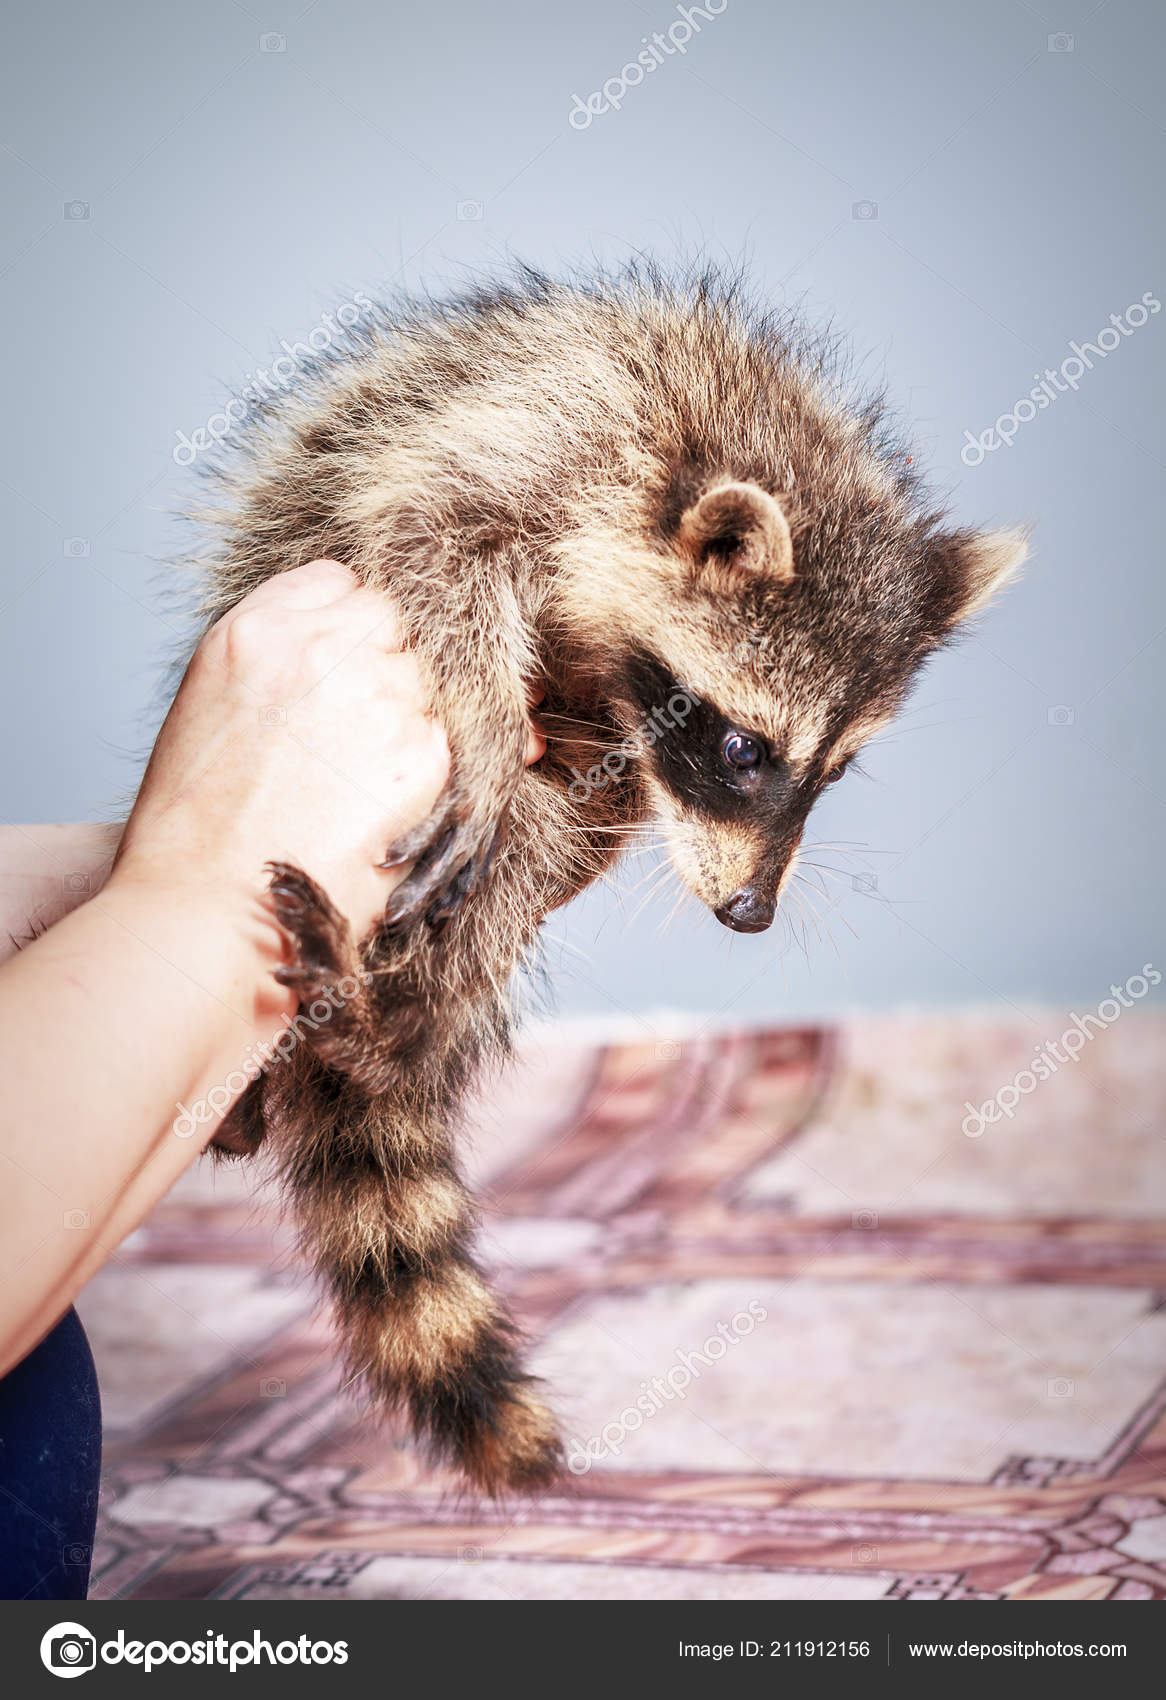 single women in raccoon A florida sheriff's deputy has posed for a selfie with a raccoon after authorities were called in to help remove the furry creature when it broke into a woman's home.